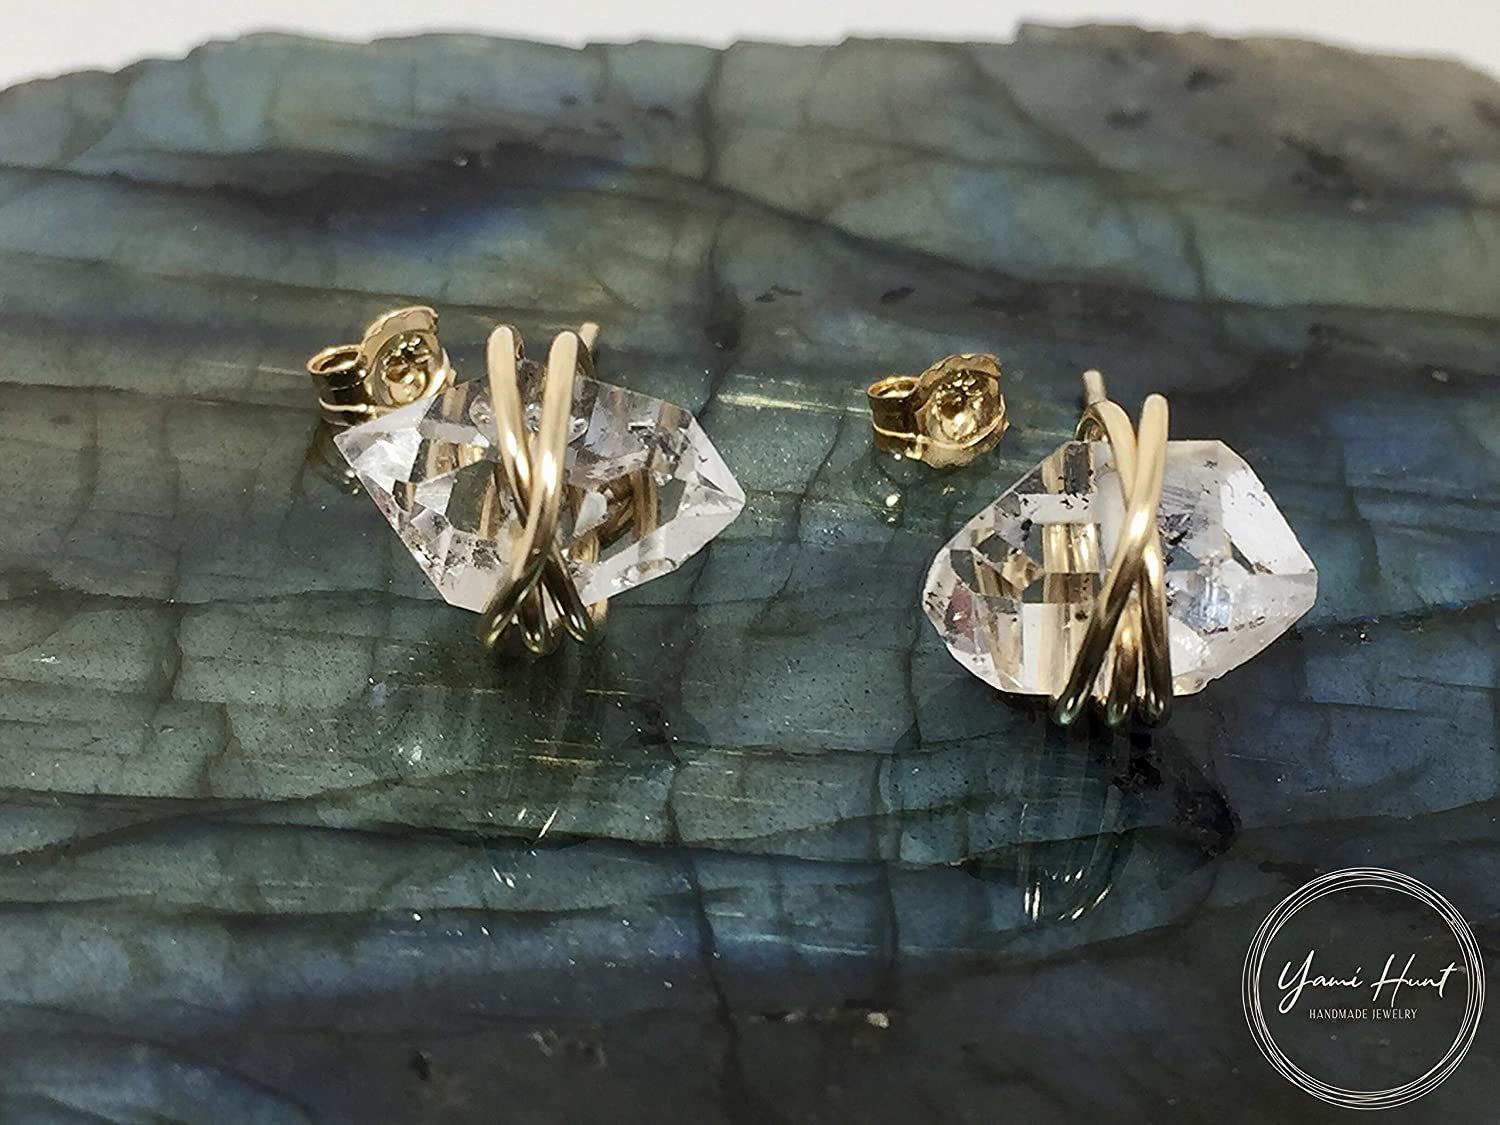 Herkimer Diamond Quartz Crystal Stud Earrings Large Size Stering Silver Wire and Backings Stud Earrings April Birthstone Herkimer Diamond Crystal Gift For Her